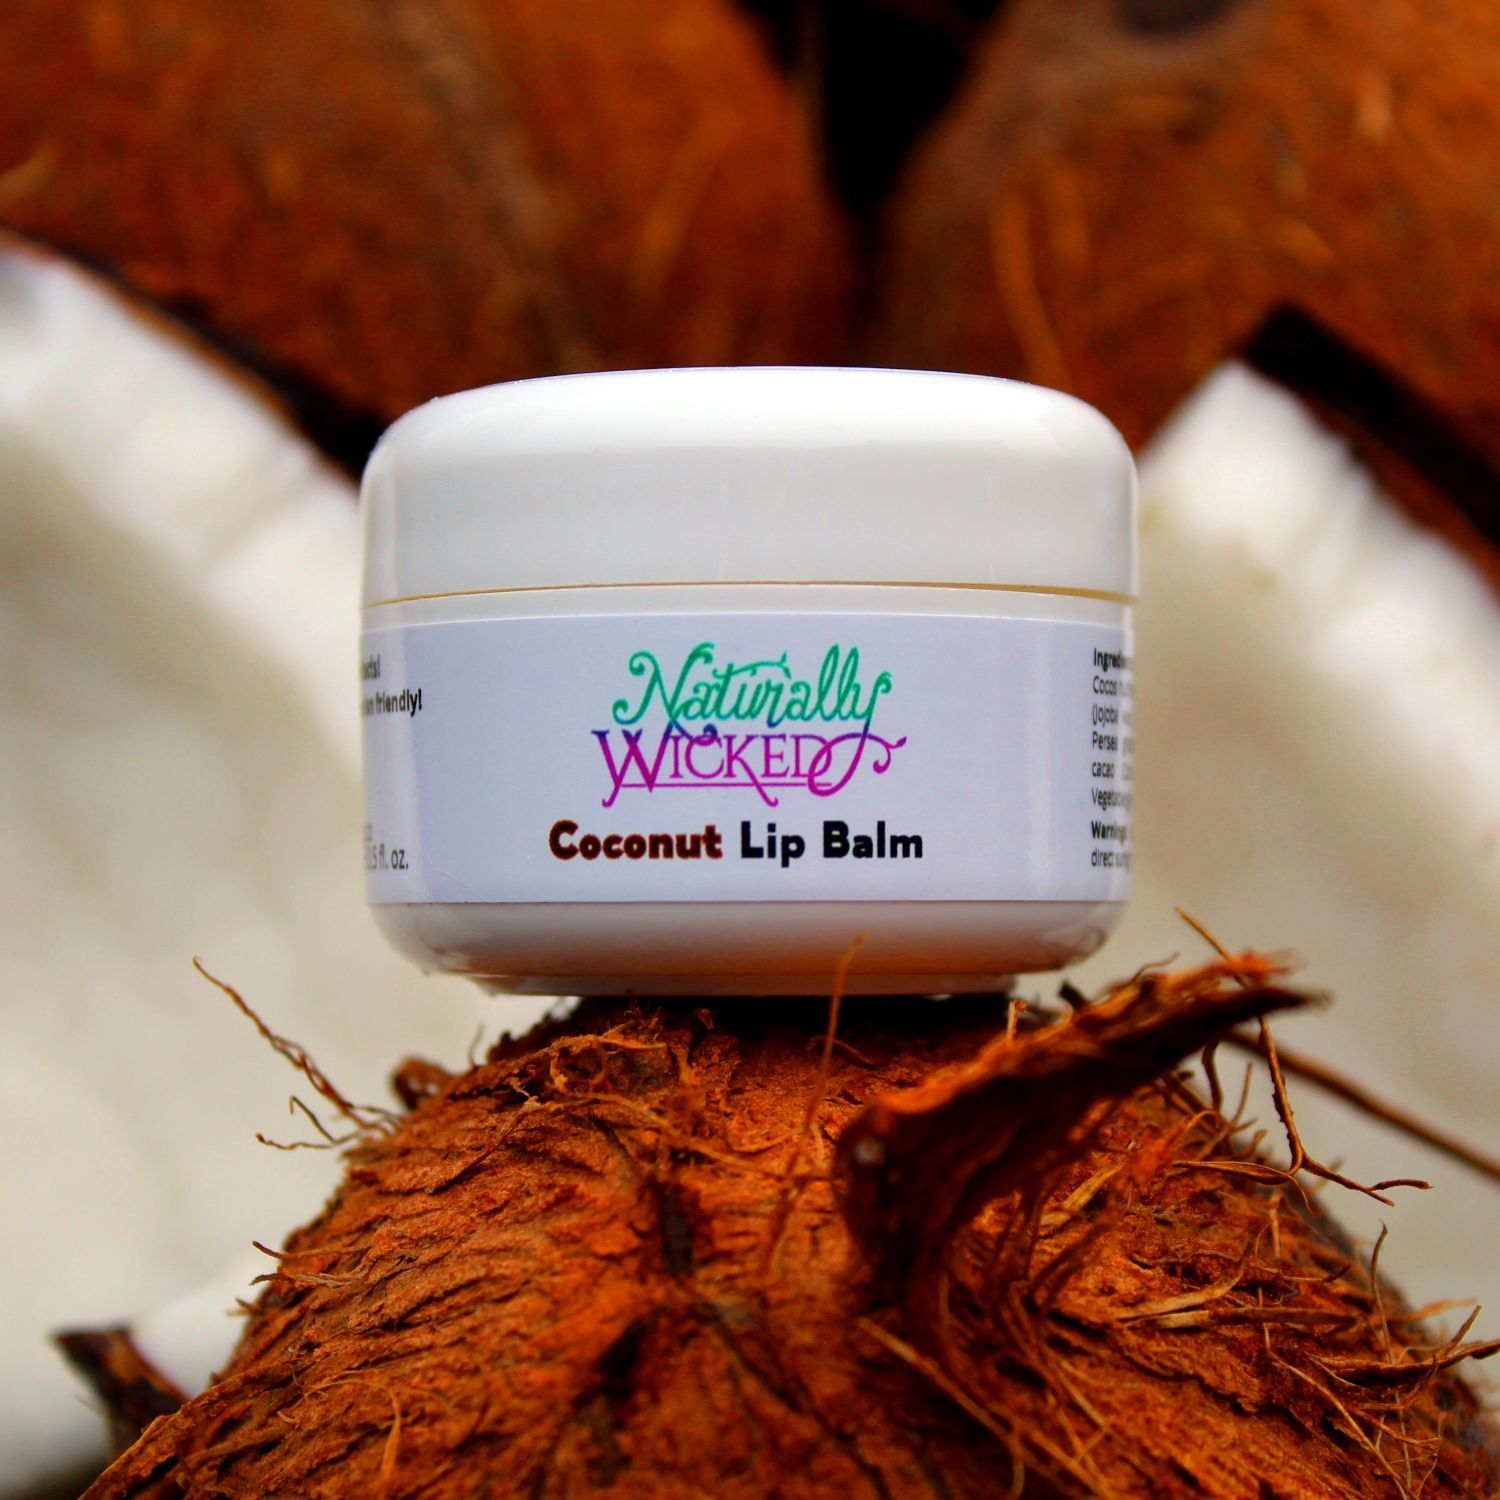 Naturally Wicked Natural Coconut Lip Balm Sat On Top Of Brown Coconut Surrounded By Coconut Shells